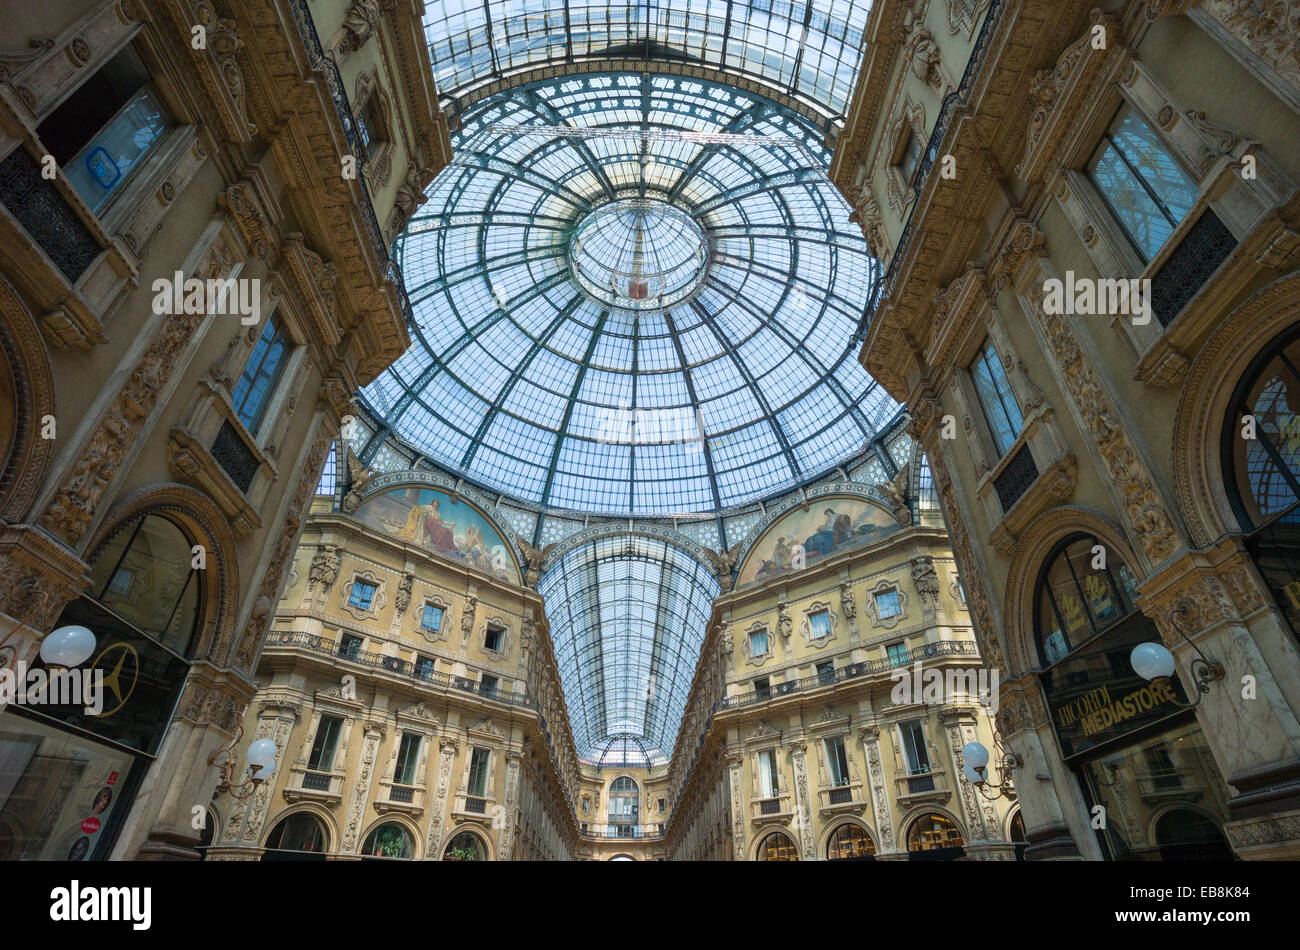 Italy, Milan, the glass roofed arcade of Vittorio Emanuele gallery - Stock Image